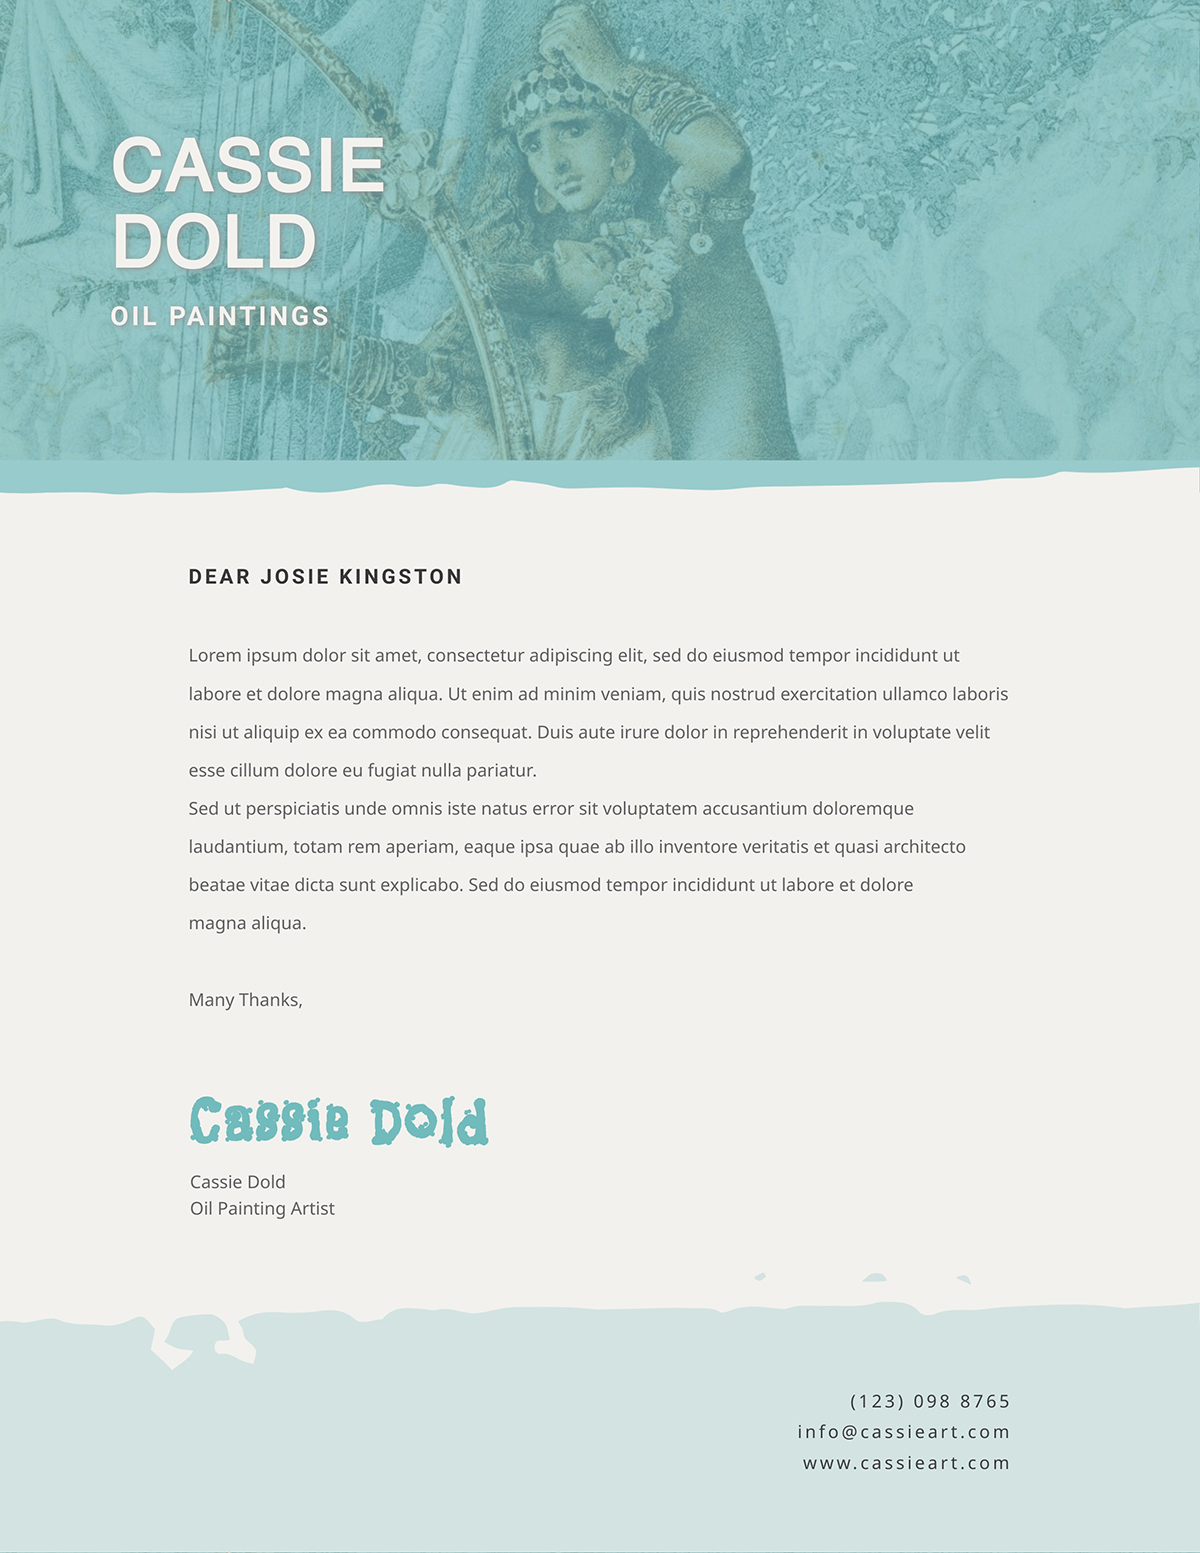 Blue and tan business letter template available in Visme.